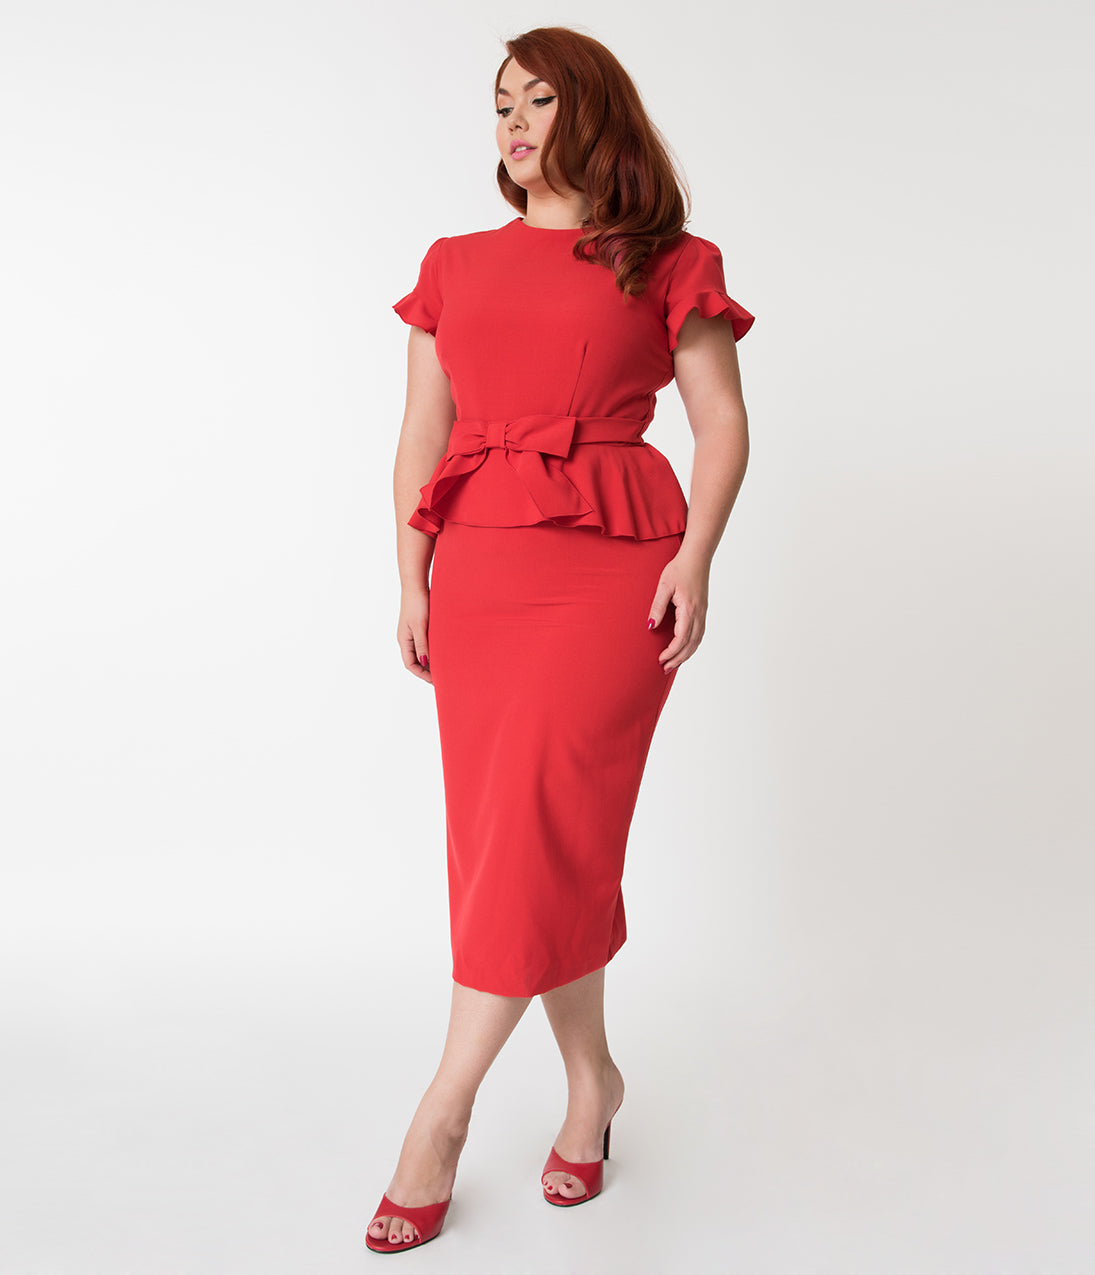 1940s Evening, Prom, Party, Cocktail Dresses & Ball Gowns Stop Staring Plus Size Red Peplum Top Willow Wiggle Dress $178.00 AT vintagedancer.com